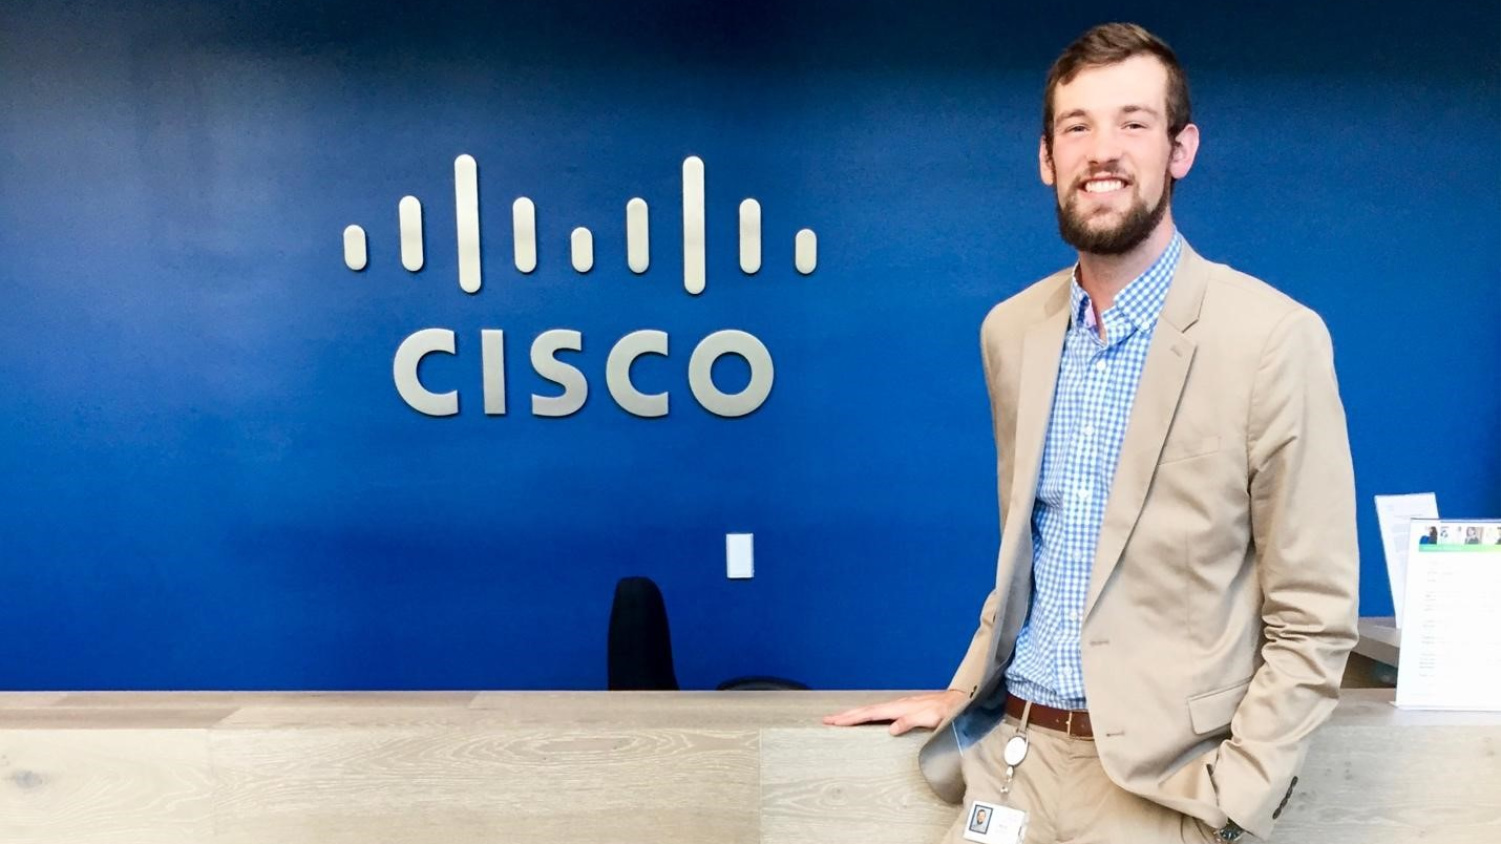 Paul Burke in front of blue wall with Cisco logo